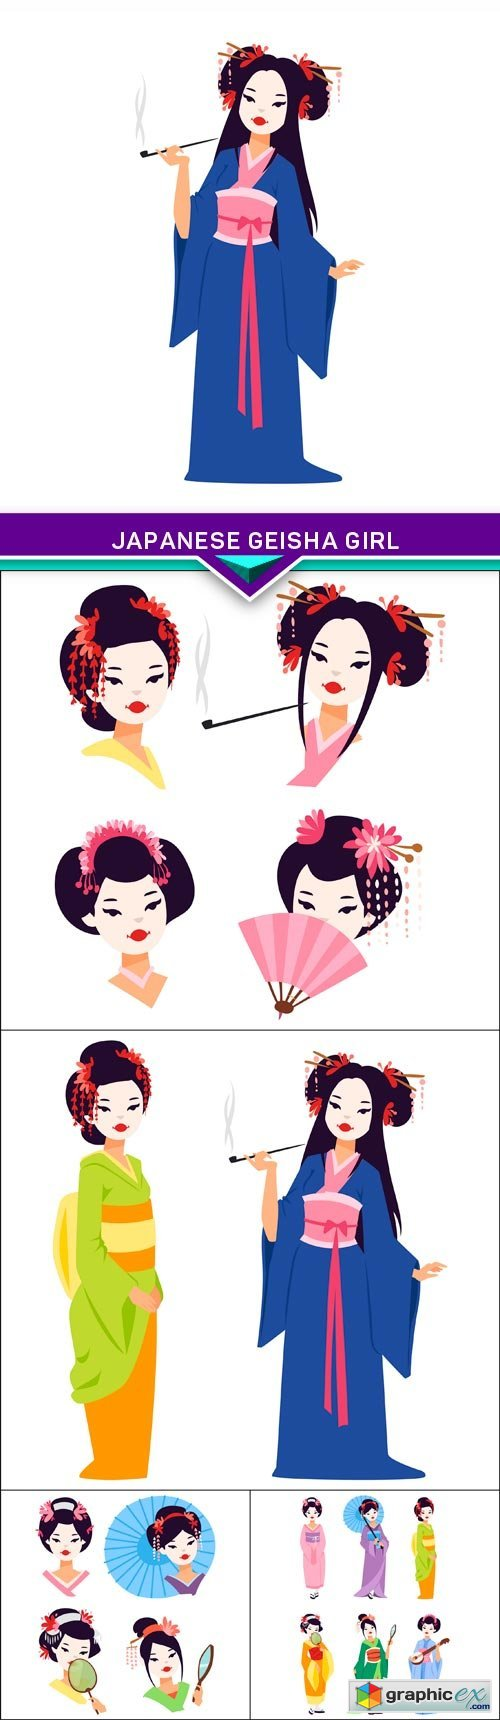 Japanese geisha girl 5X EPS